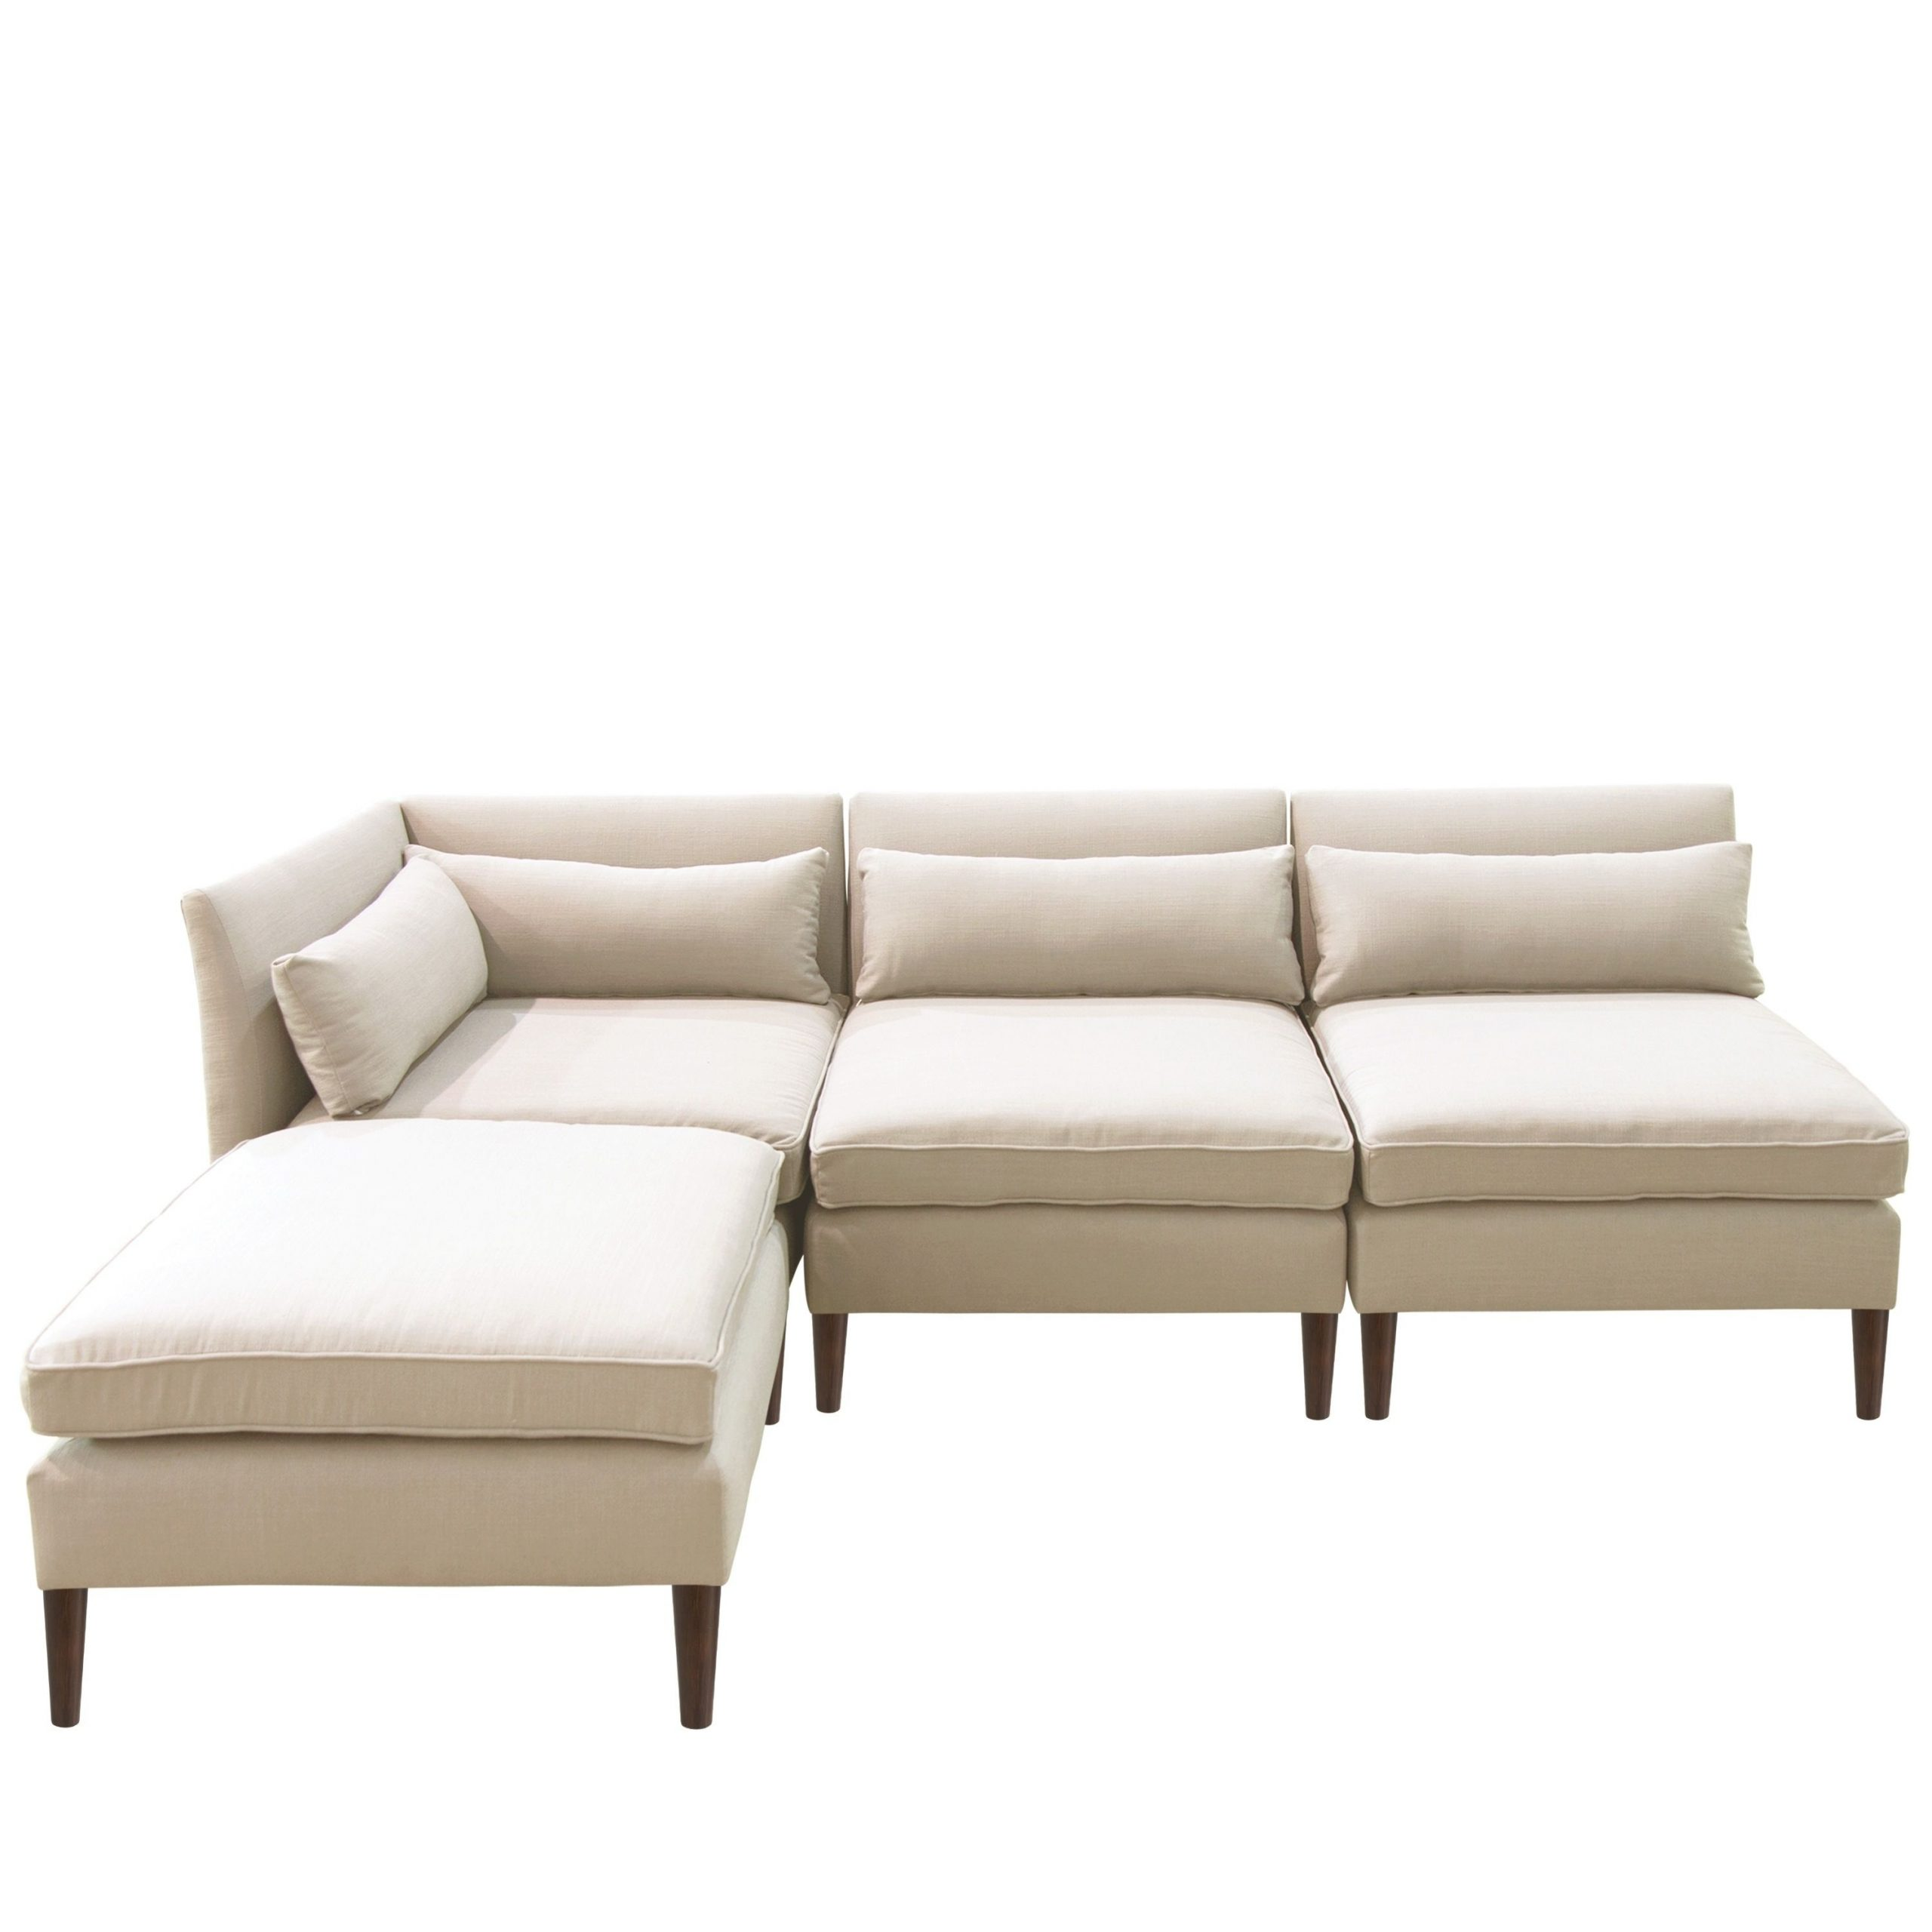 Fashionable 4pc Alexis Sectional Sofas With Silver Metal Y Legs With Regard To Online Shopping – Bedding, Furniture, Electronics, Jewelry (View 6 of 20)